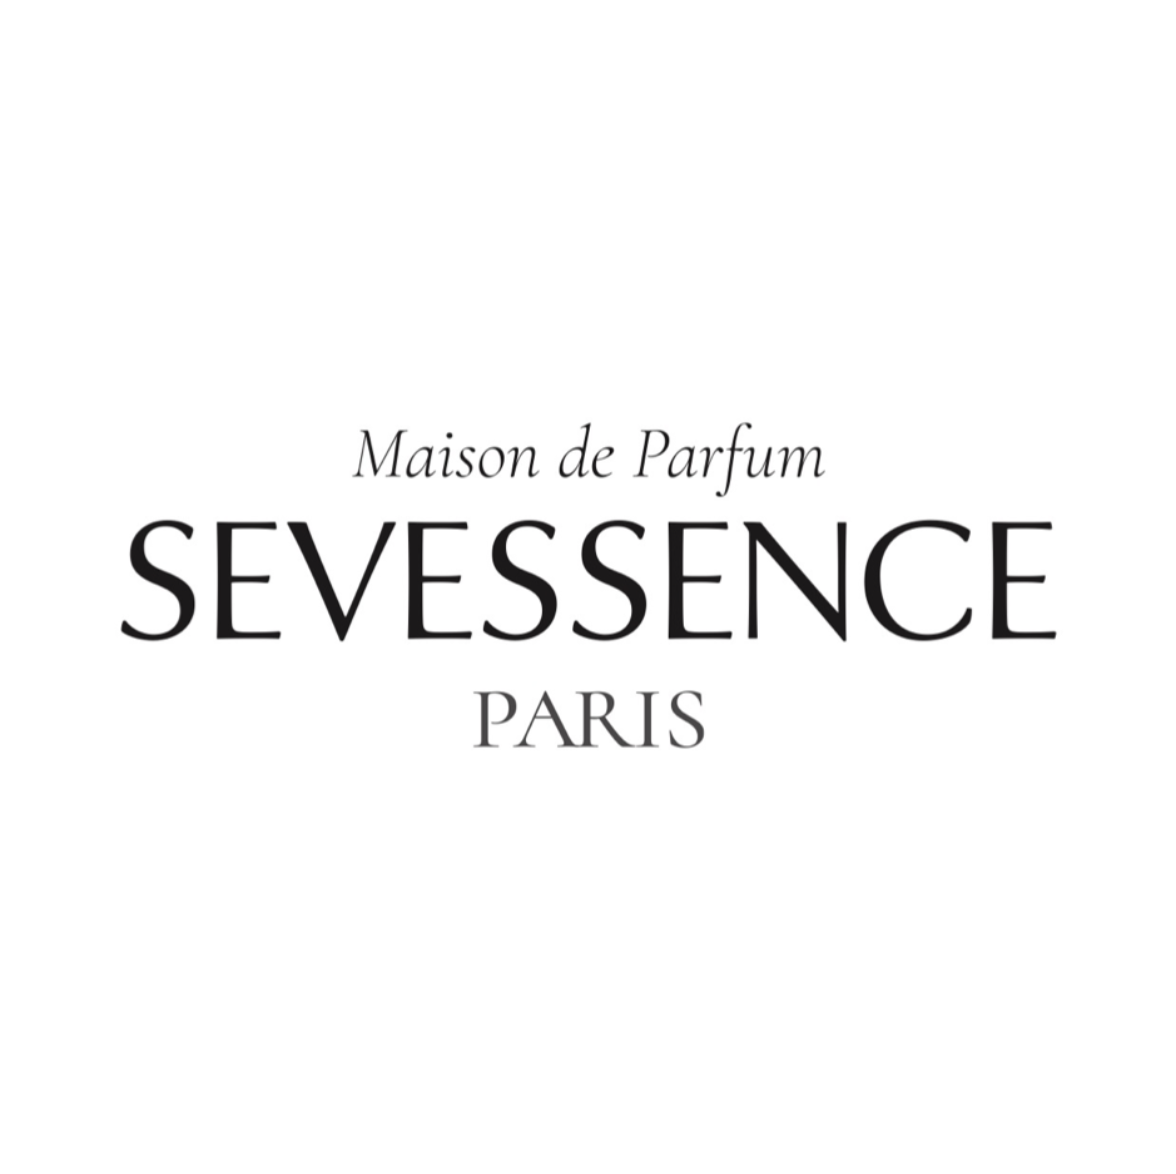 Sevessence organic and allergen-free perfumes